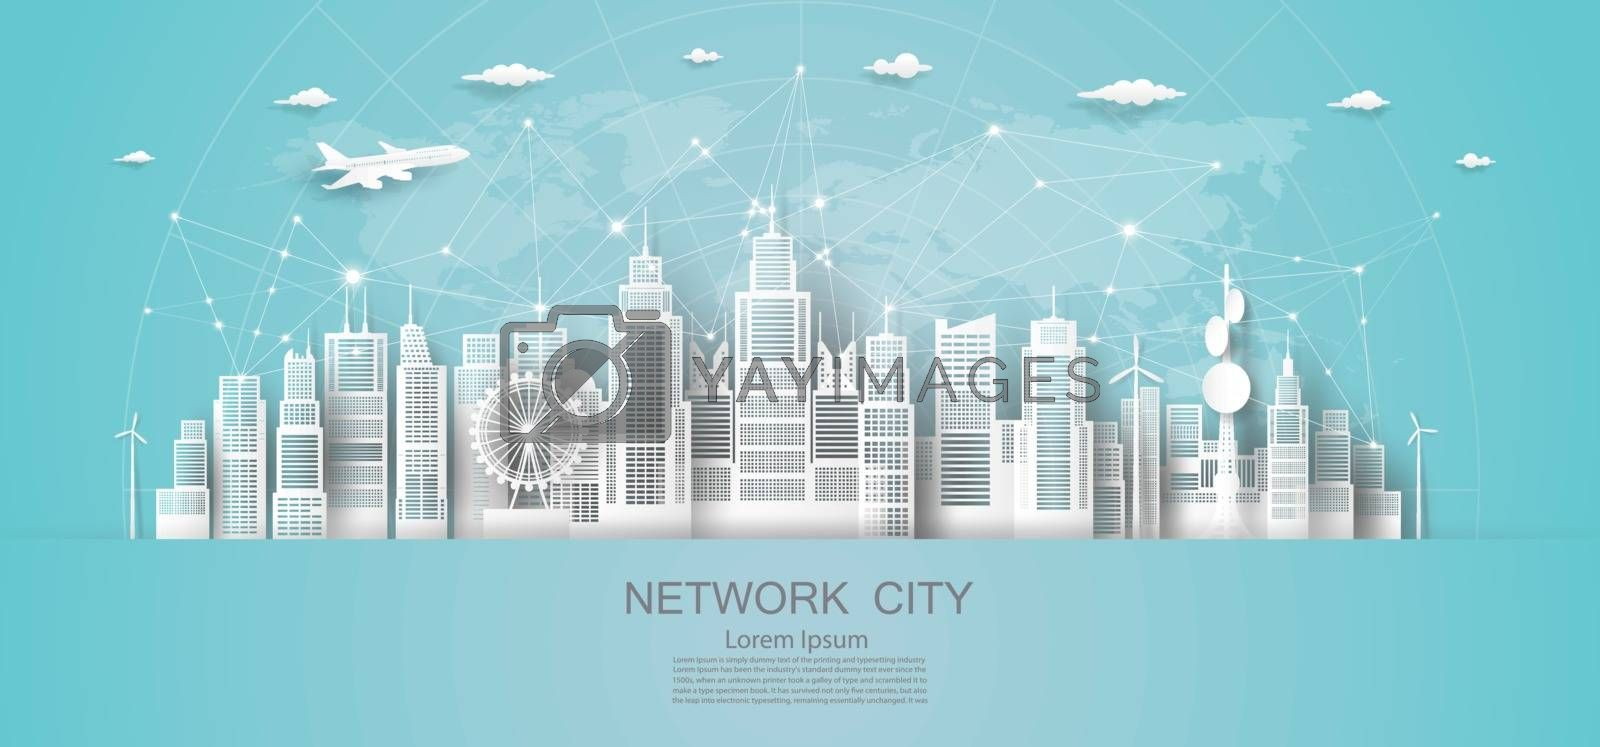 Modern economic technology city network in downtown skyscraper background, Eco cityscape building futuristic skyline, Vector illustration design network communication in city on blue background.